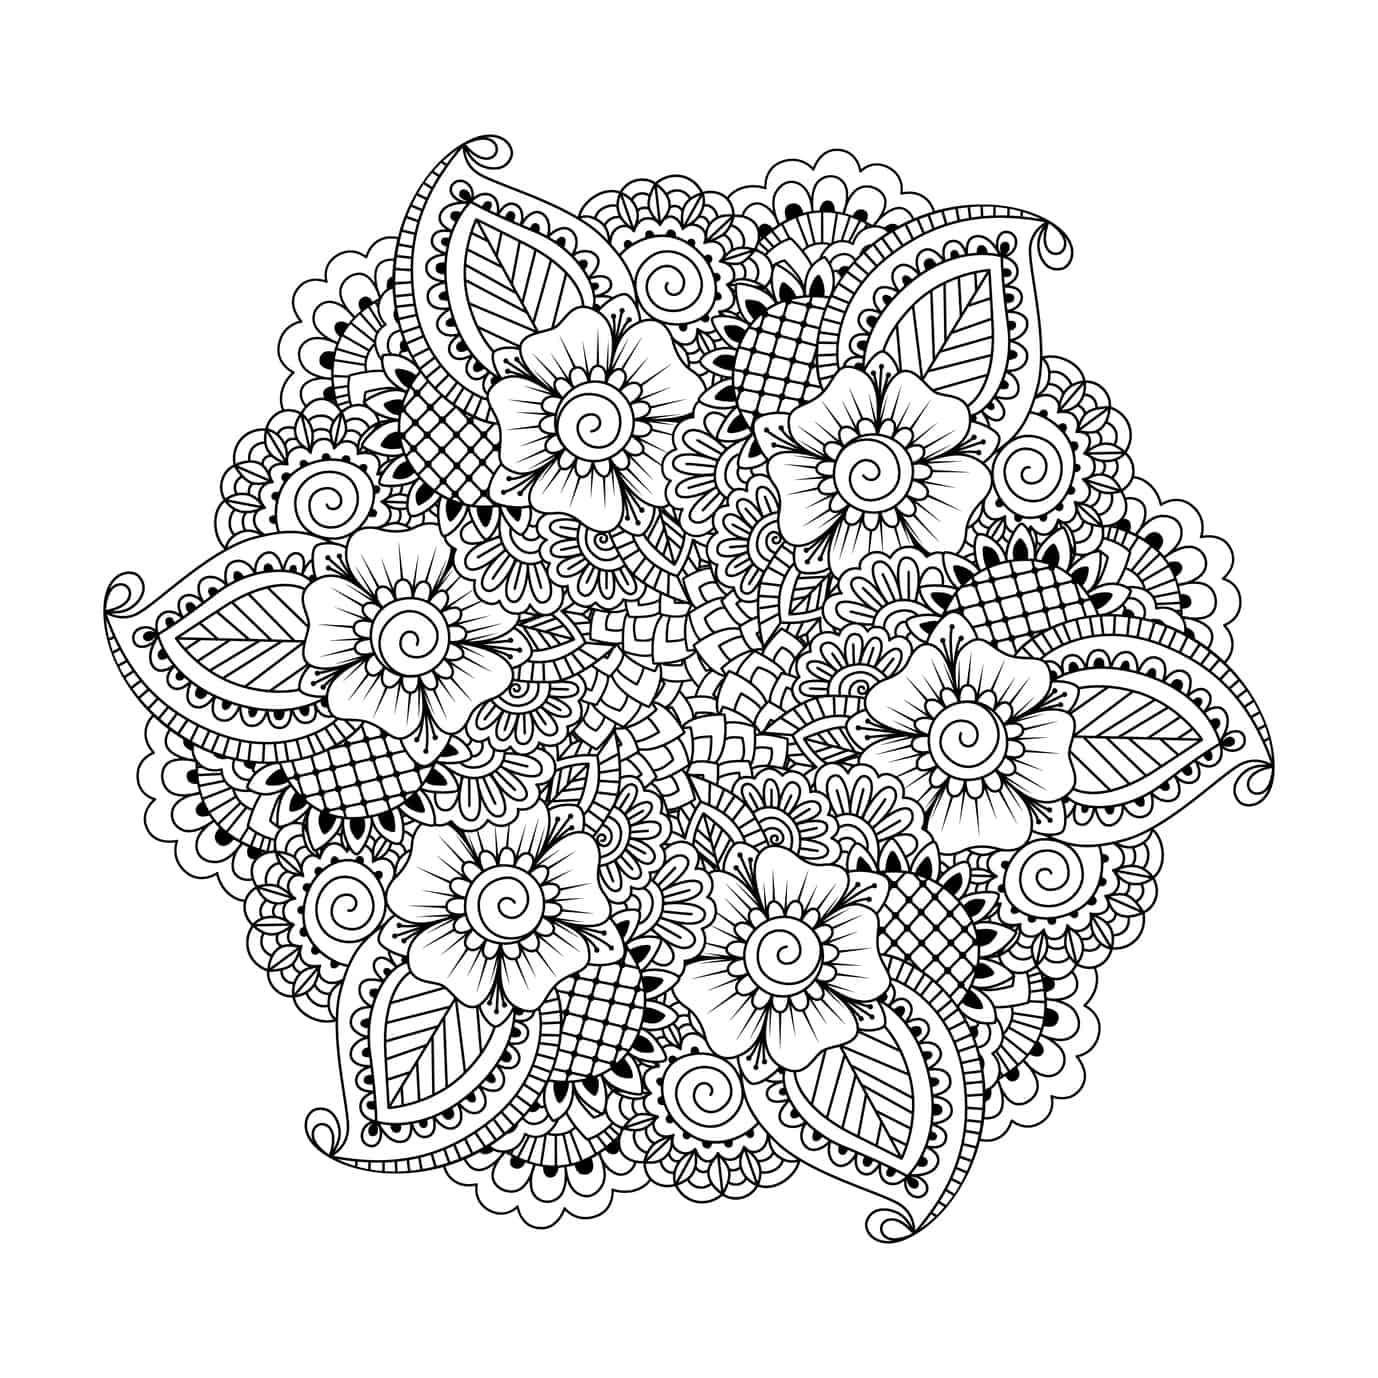 Fliegender Teppich Zum Ausmalen These Printable Abstract Coloring Pages Relieve Stress And